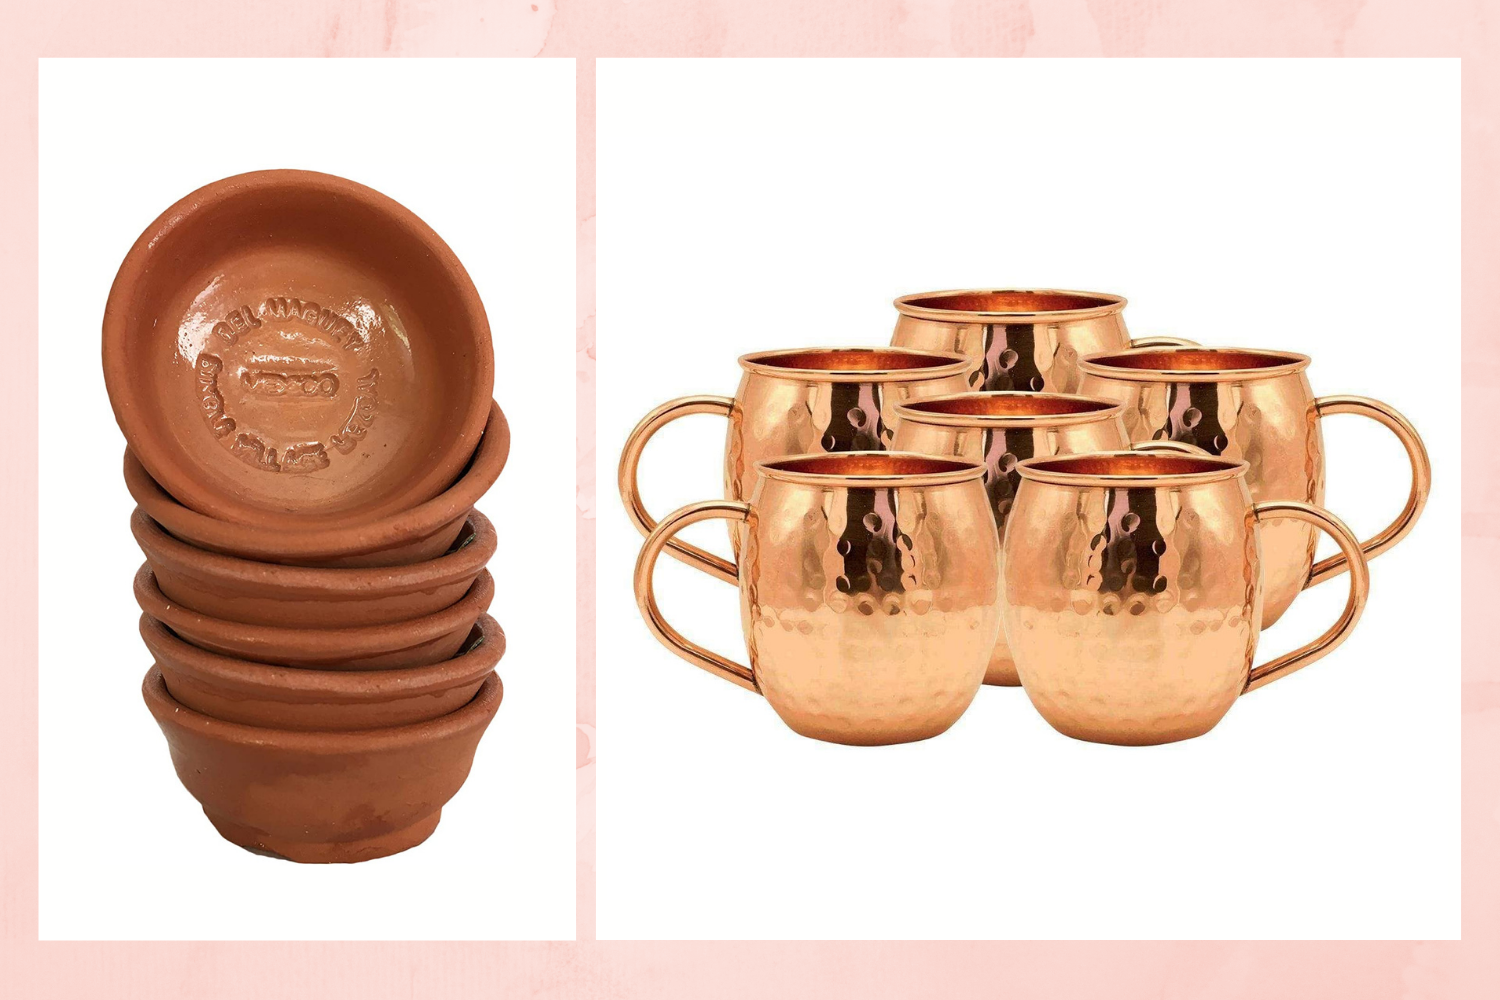 Mezcal vessels (left: copitas; right: copper mugs) - Image by Amazon and Advanced Mixology